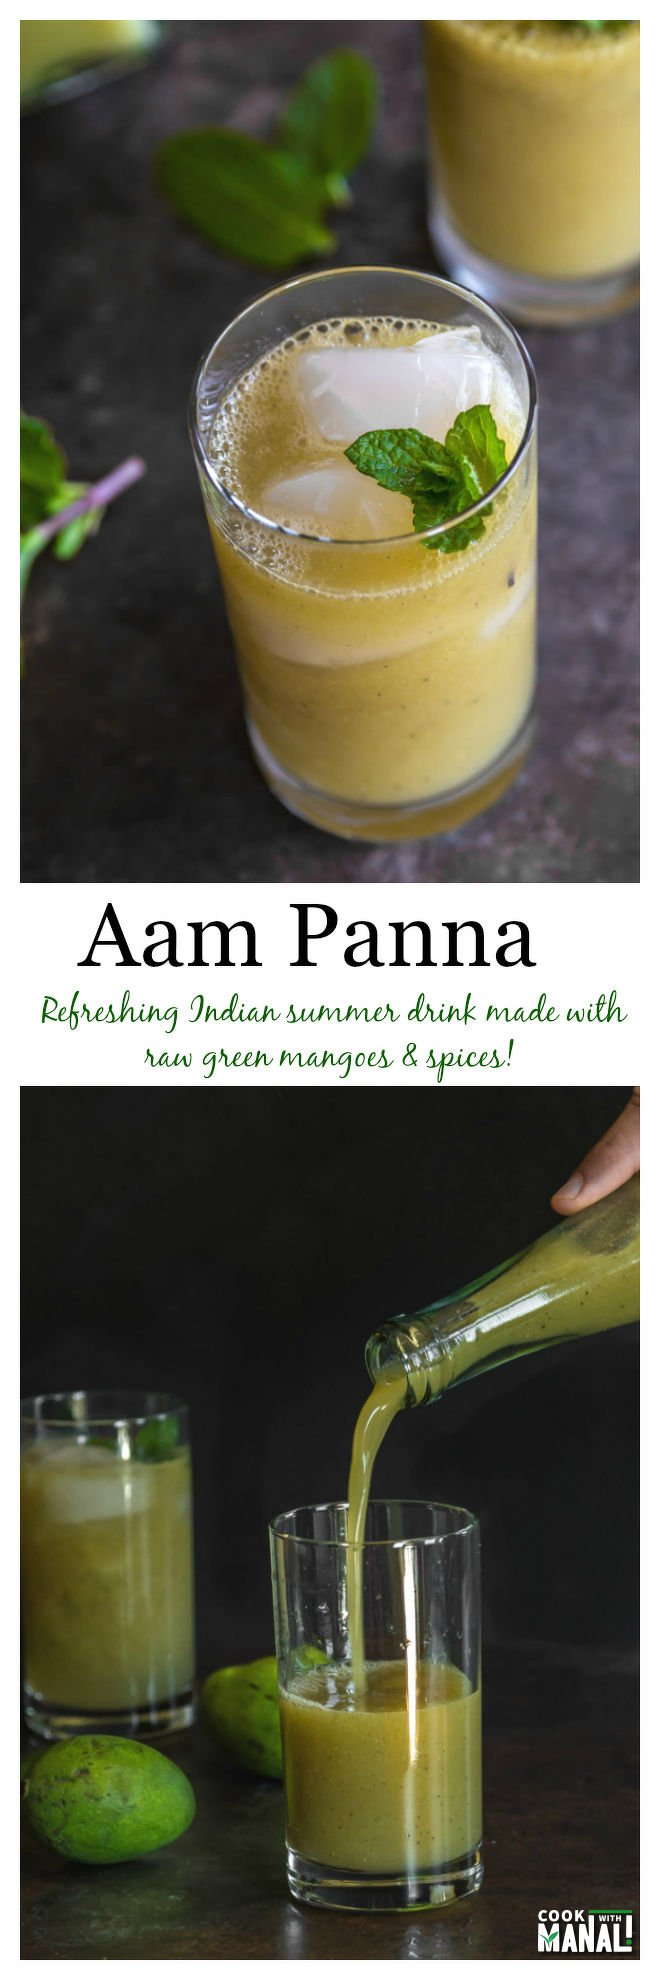 Aam Panna Recipe-Collage